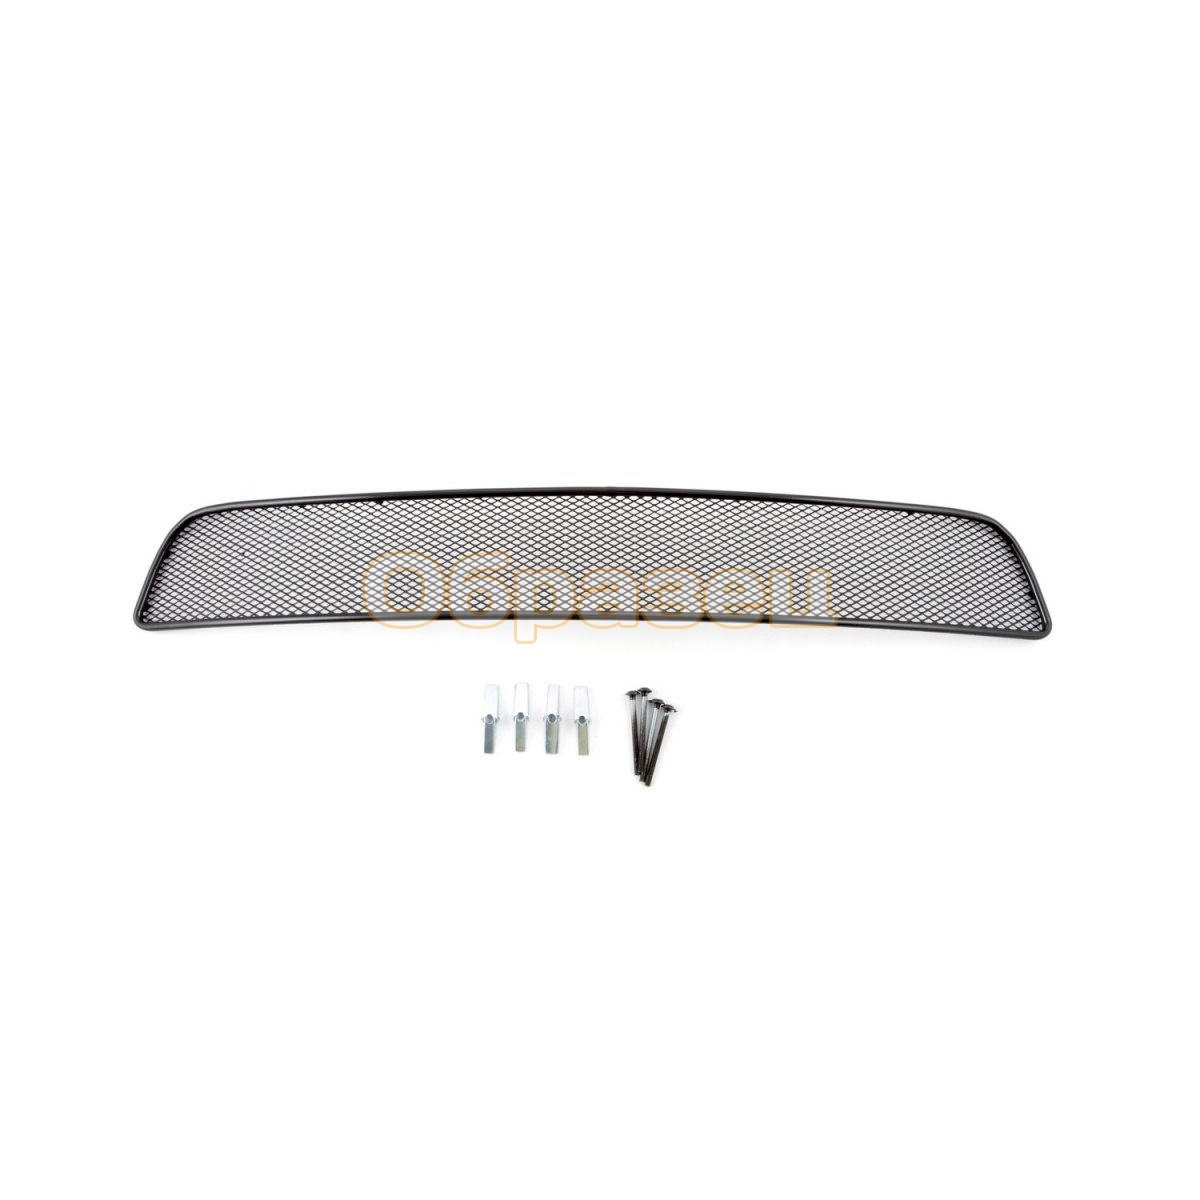 Mesh On Bumper External For Chevrolet Lacetti Hatchback 2004-2013 BLK